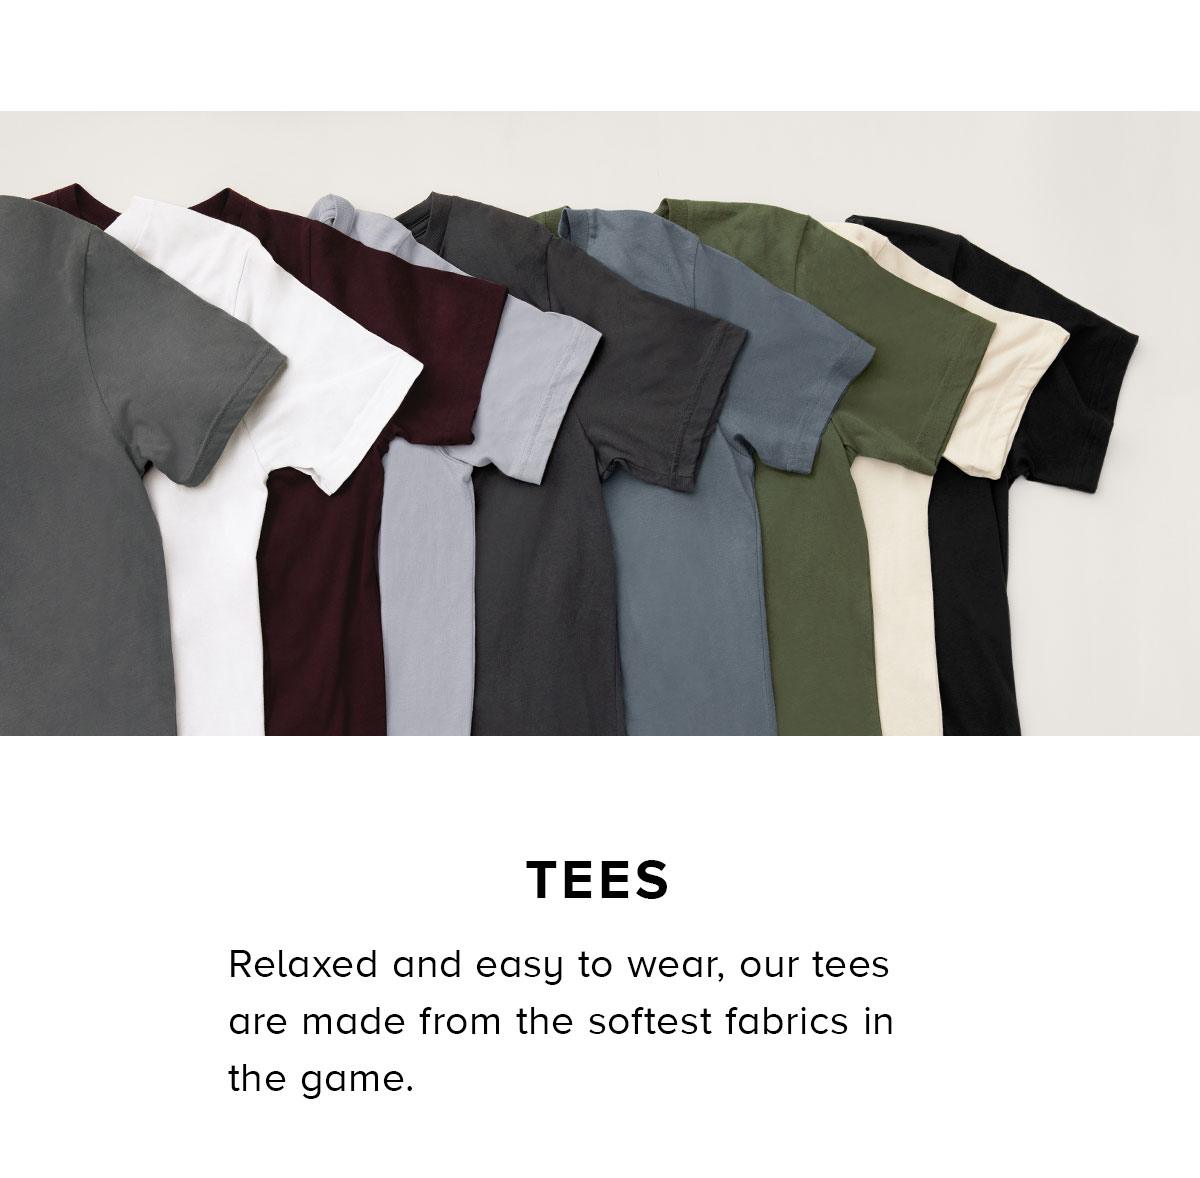 TEES Relaxed and easy to wear